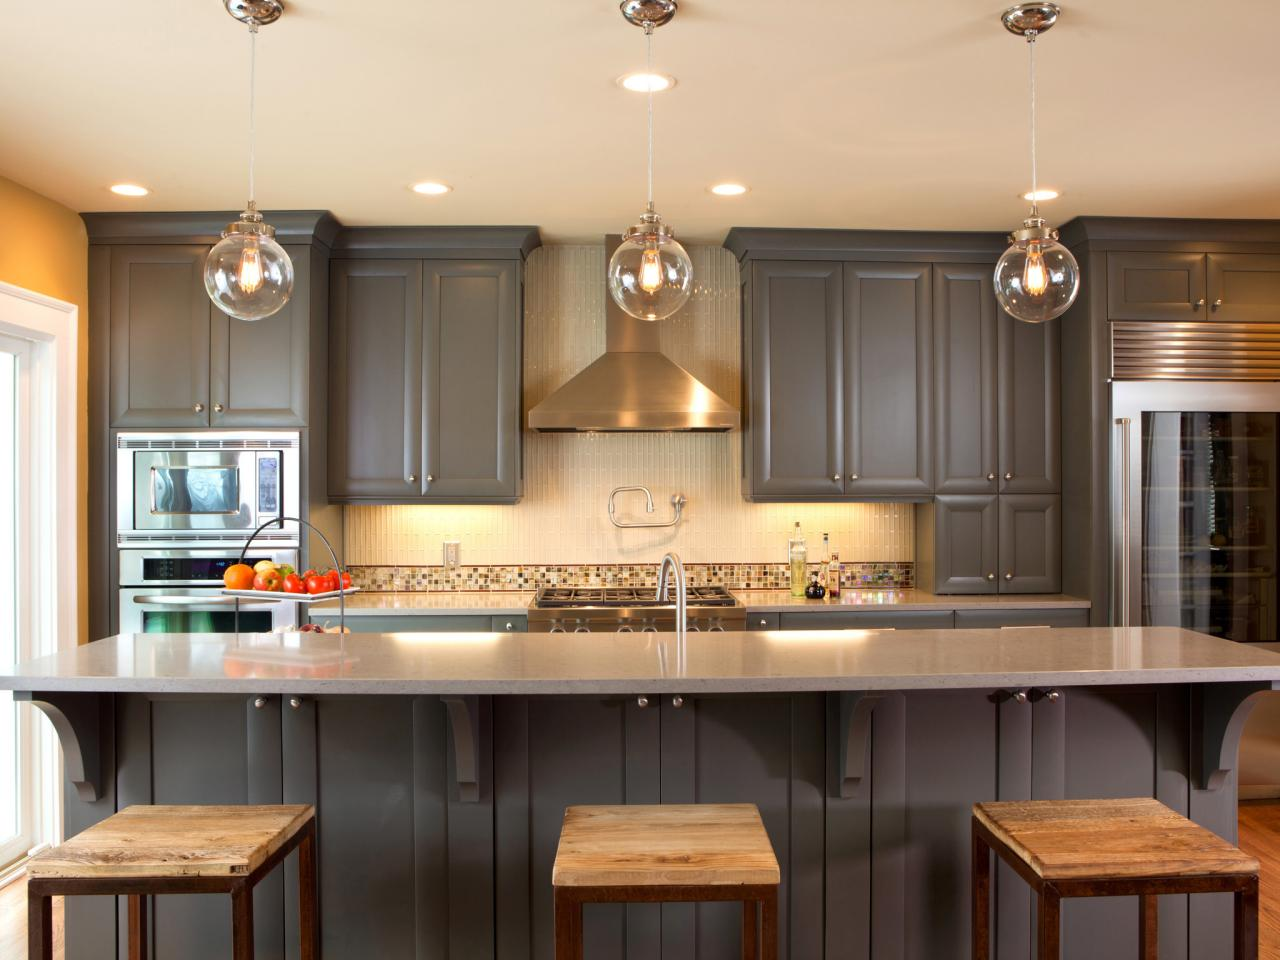 Kitchen Cabinet Ideas with chinese kitchen cabinets with dark kitchen cabinets